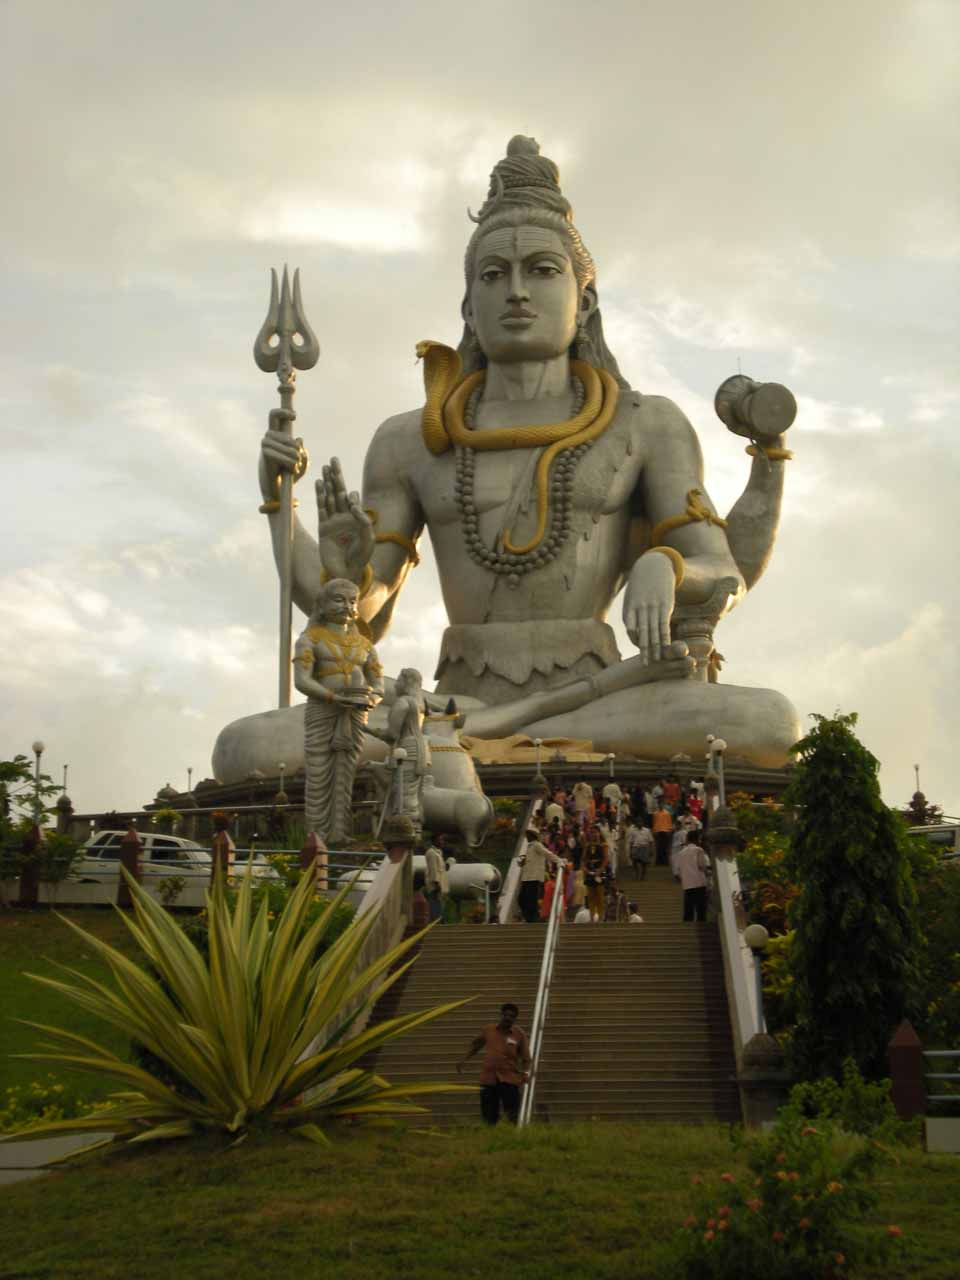 One of the main attractions of Murudeshwar was this giant Shive Statue